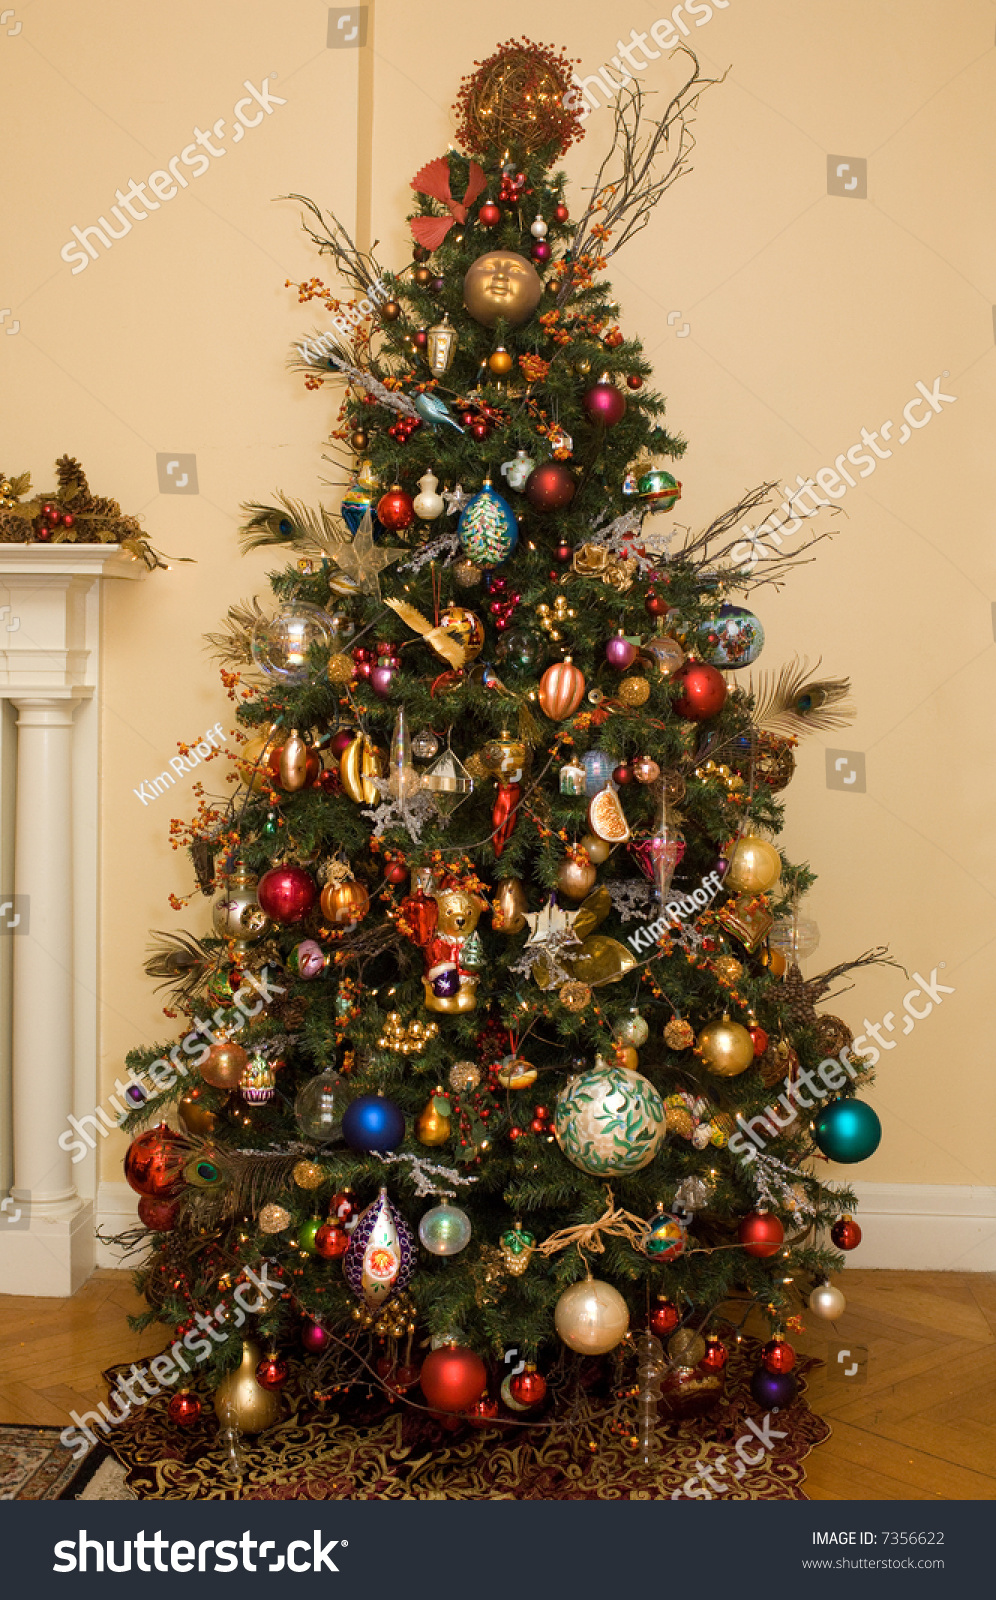 Beautifully Decorated Christmas Tree Stock Photo 7356622